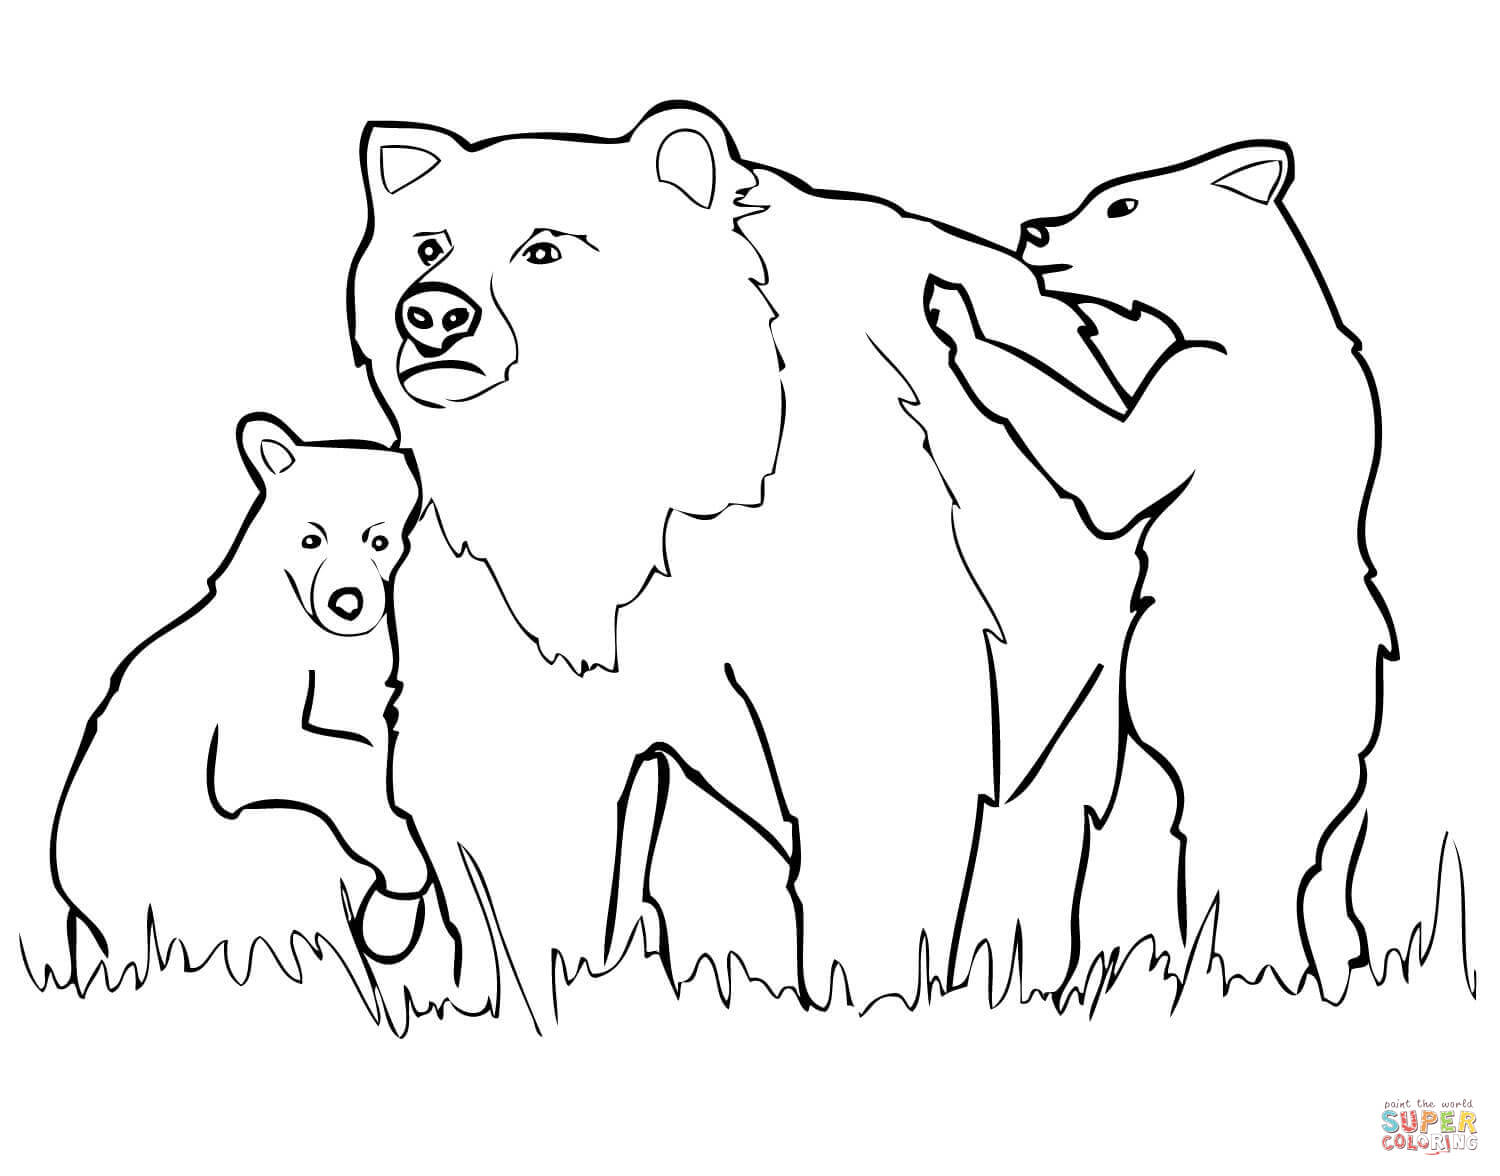 grizzly bear outline bear outline svg bear svg grizzly svg bear clipart bear etsy bear outline grizzly